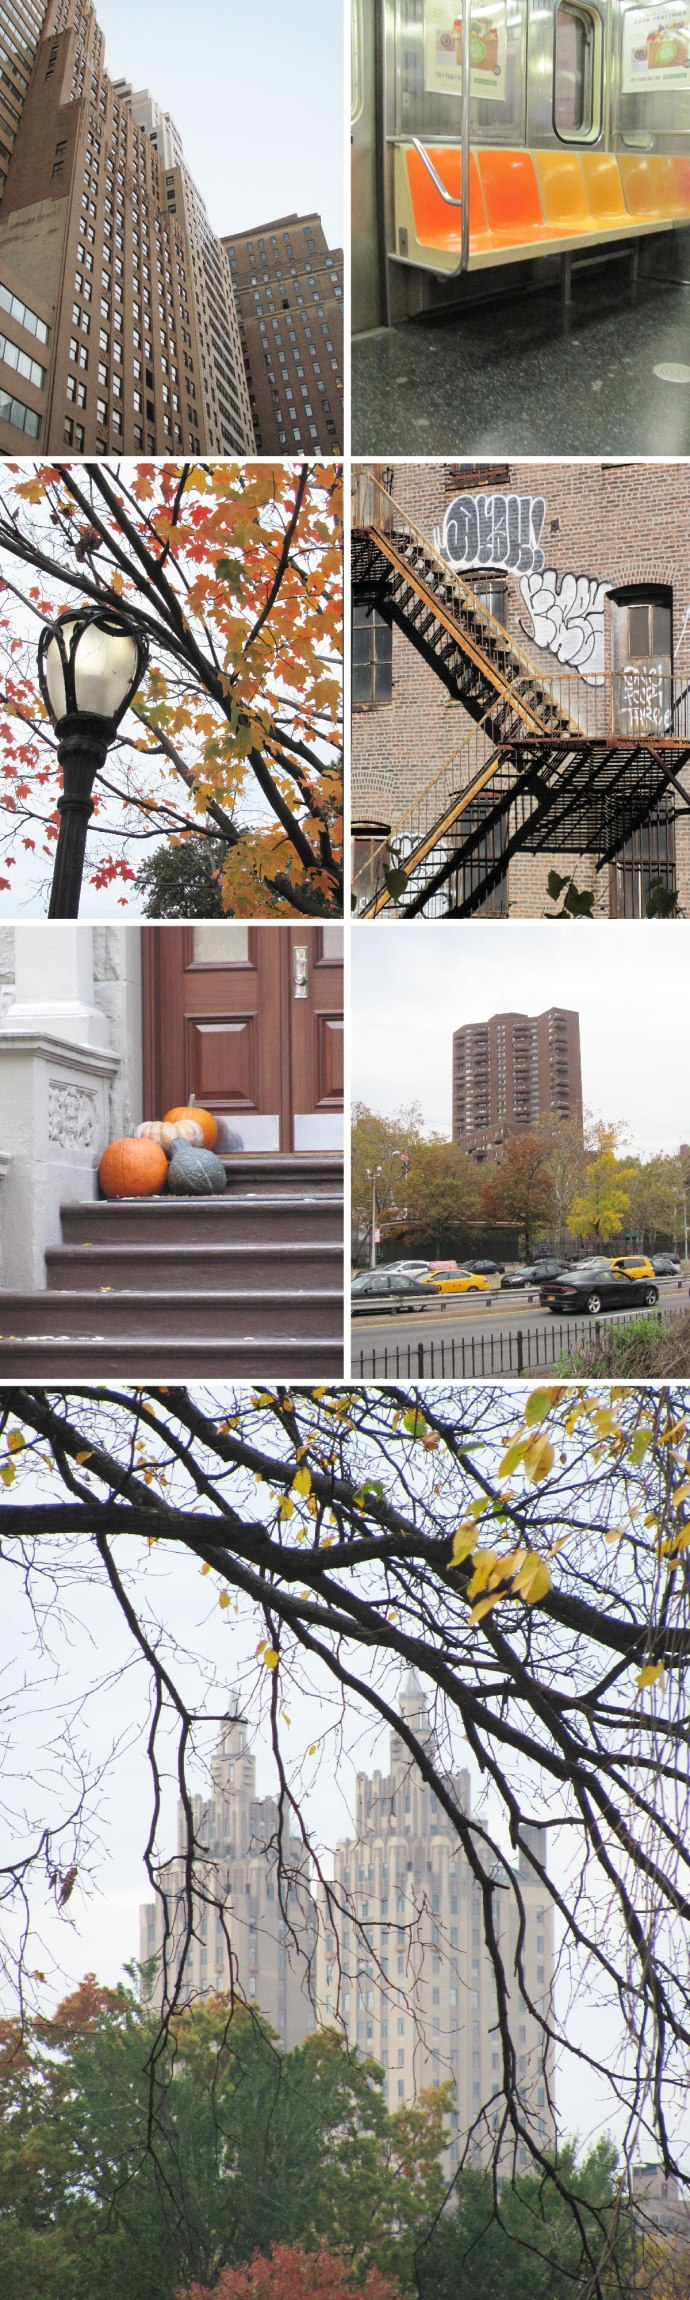 autumn_blog-grids-04